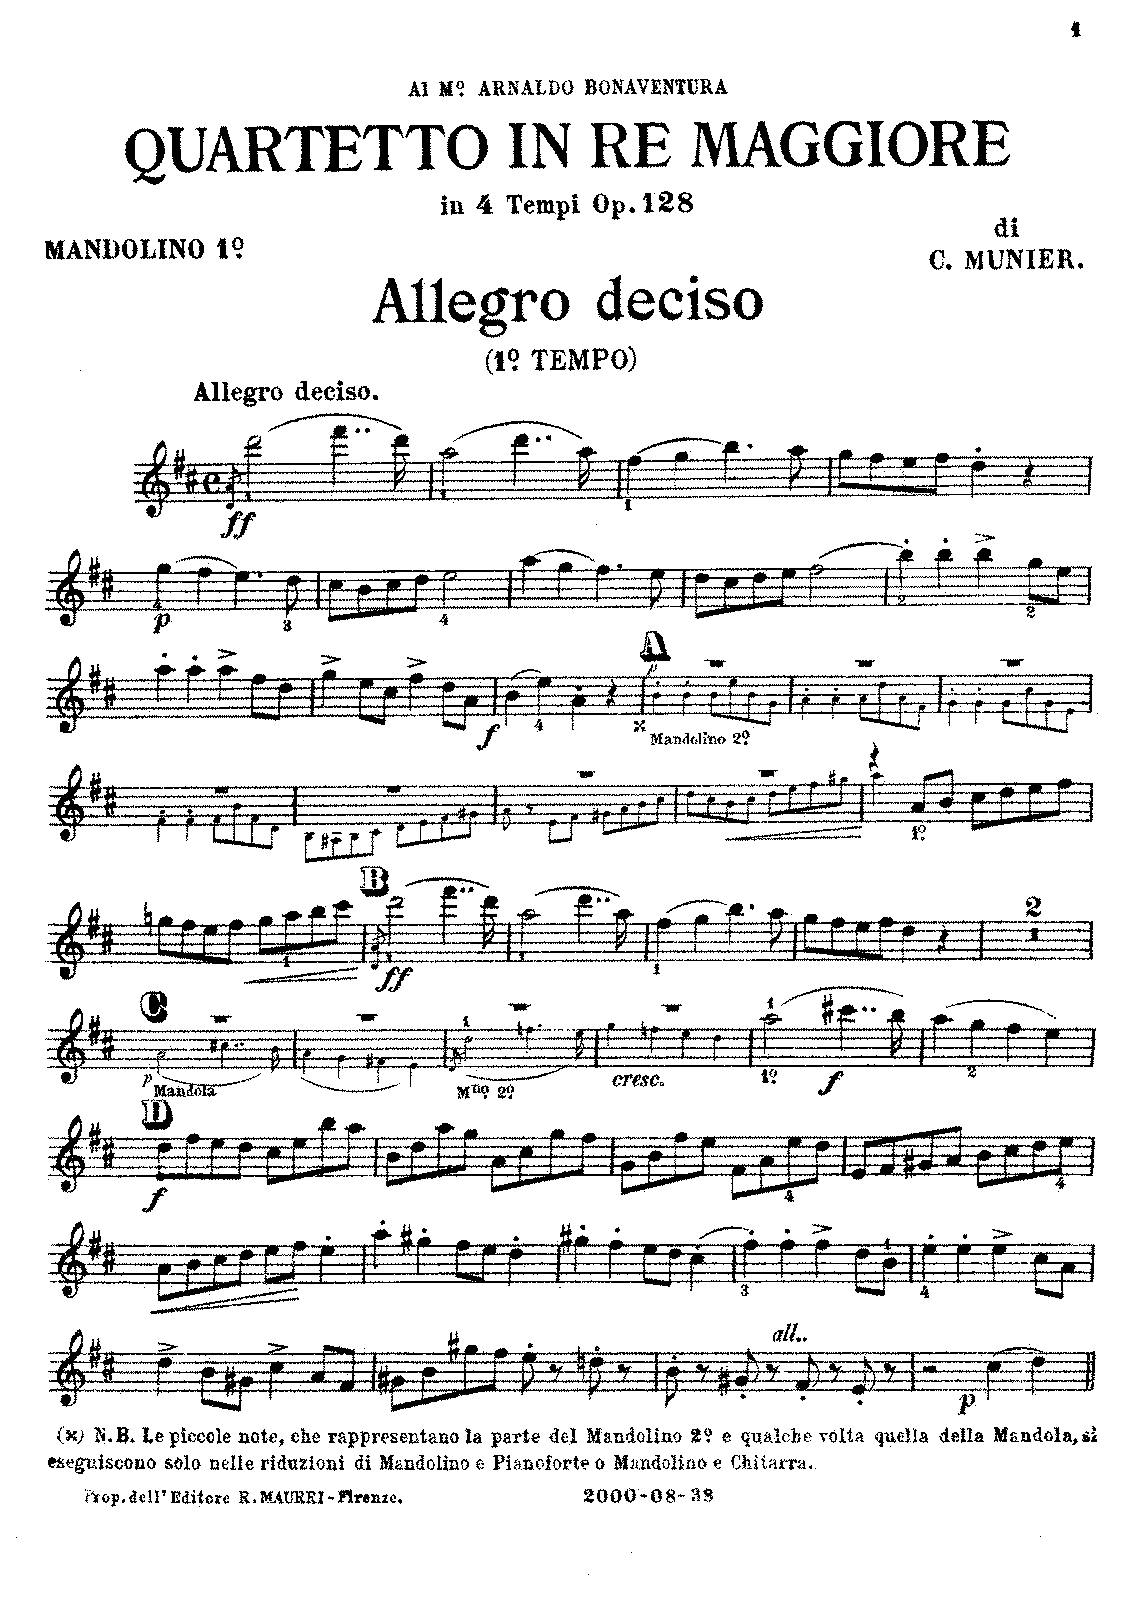 PMLP636496-Quartetto in Re Maggiore in 4 Tempi Op.128, C.Munier Mandolino 1º..pdf